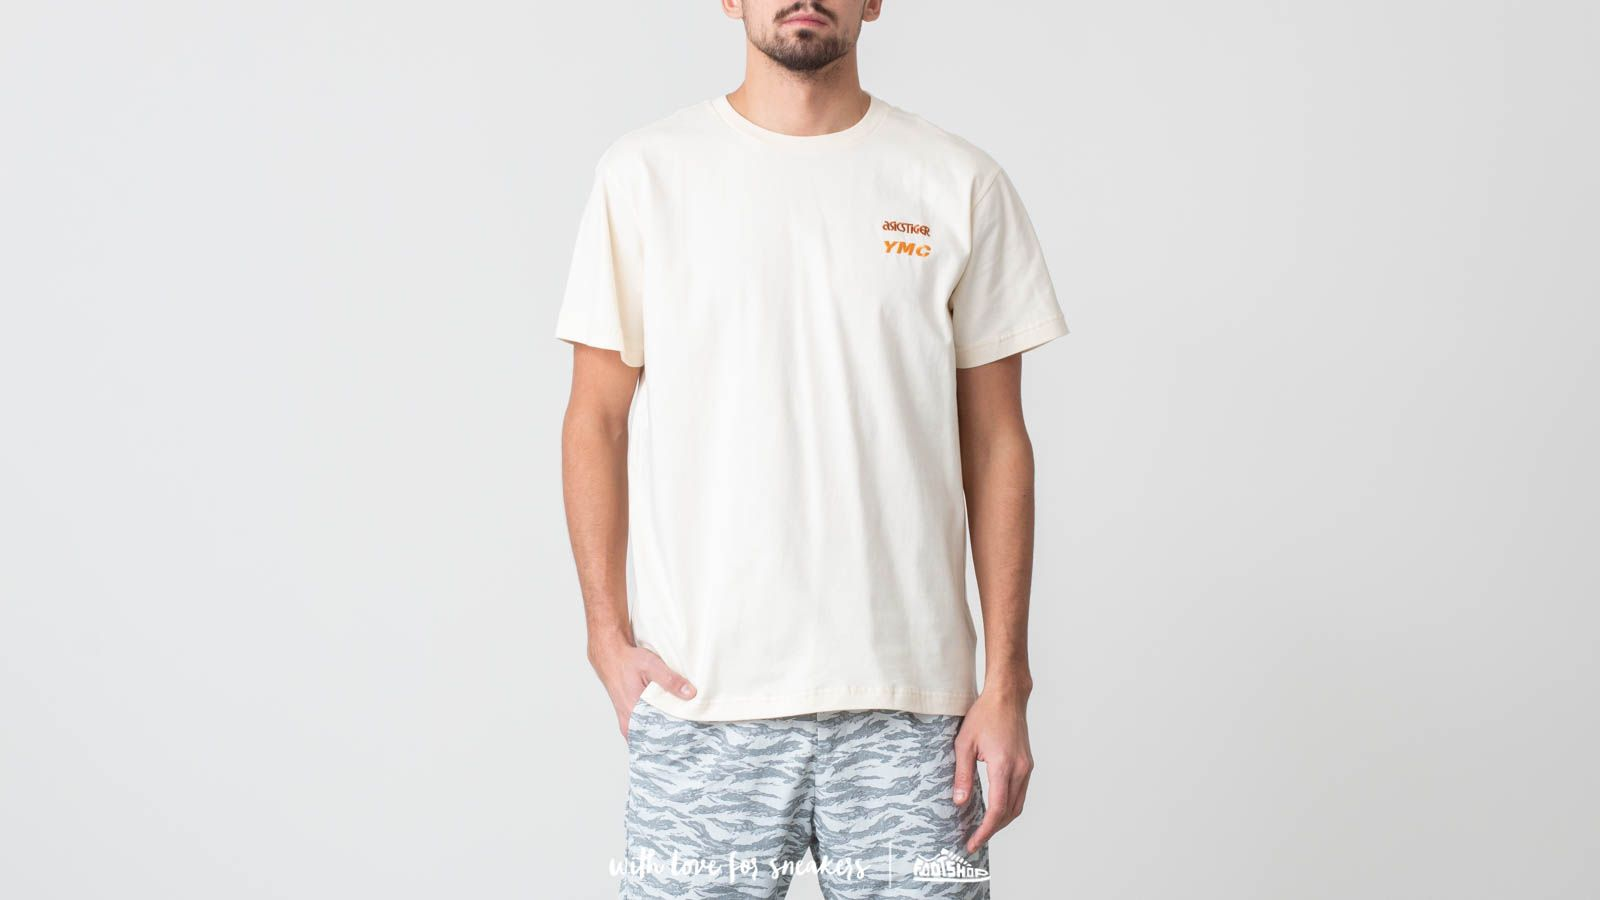 Asics YMC Shortsleevees Tee